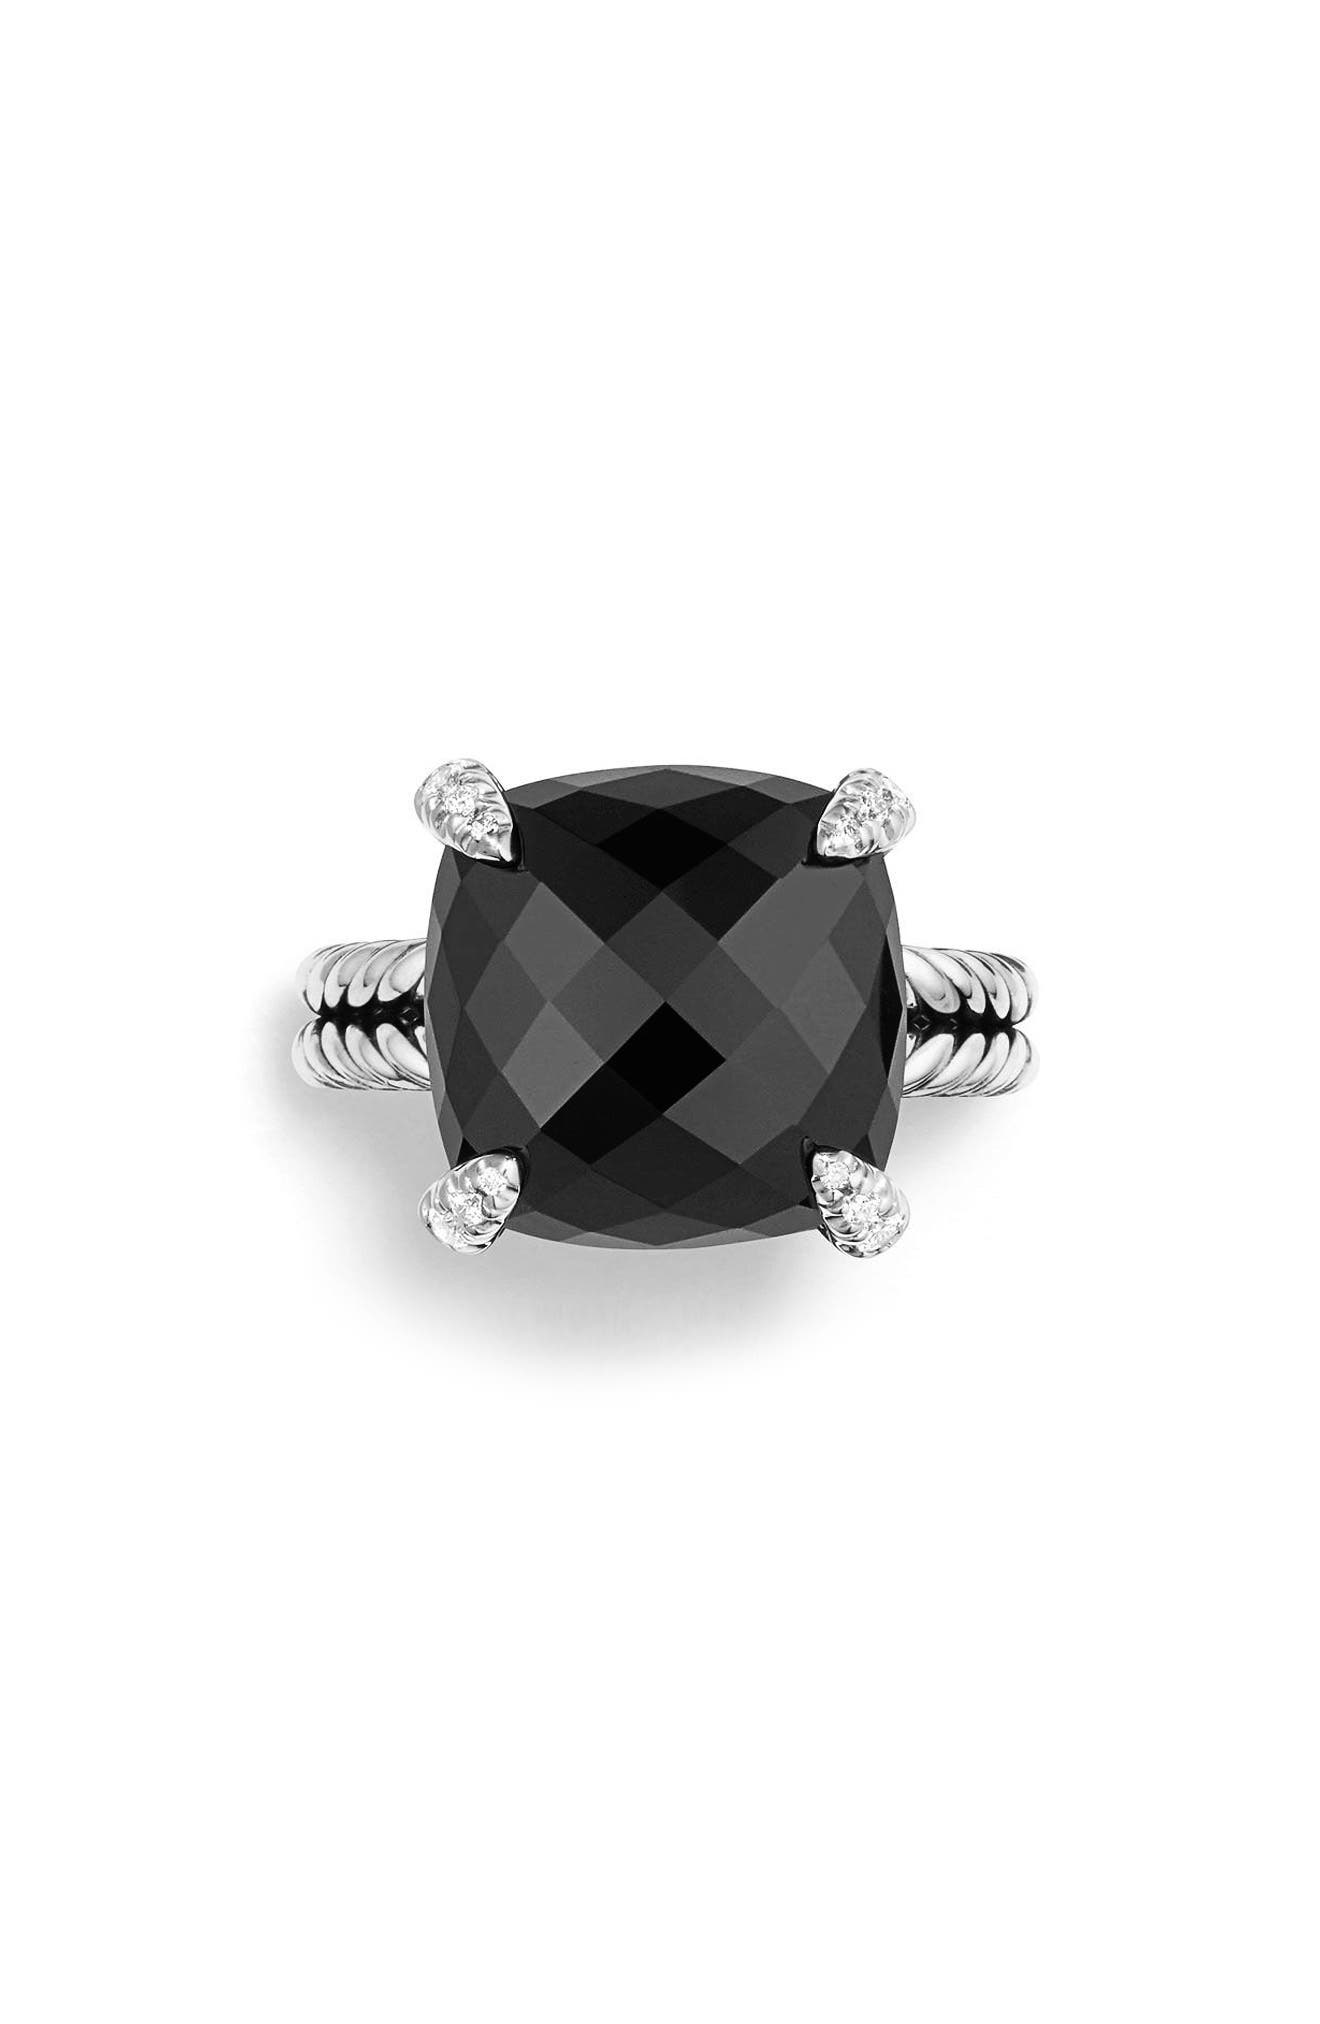 Châtelaine Ring with Semiprecious Stone & Diamonds,                             Alternate thumbnail 3, color,                             BLACK ONYX